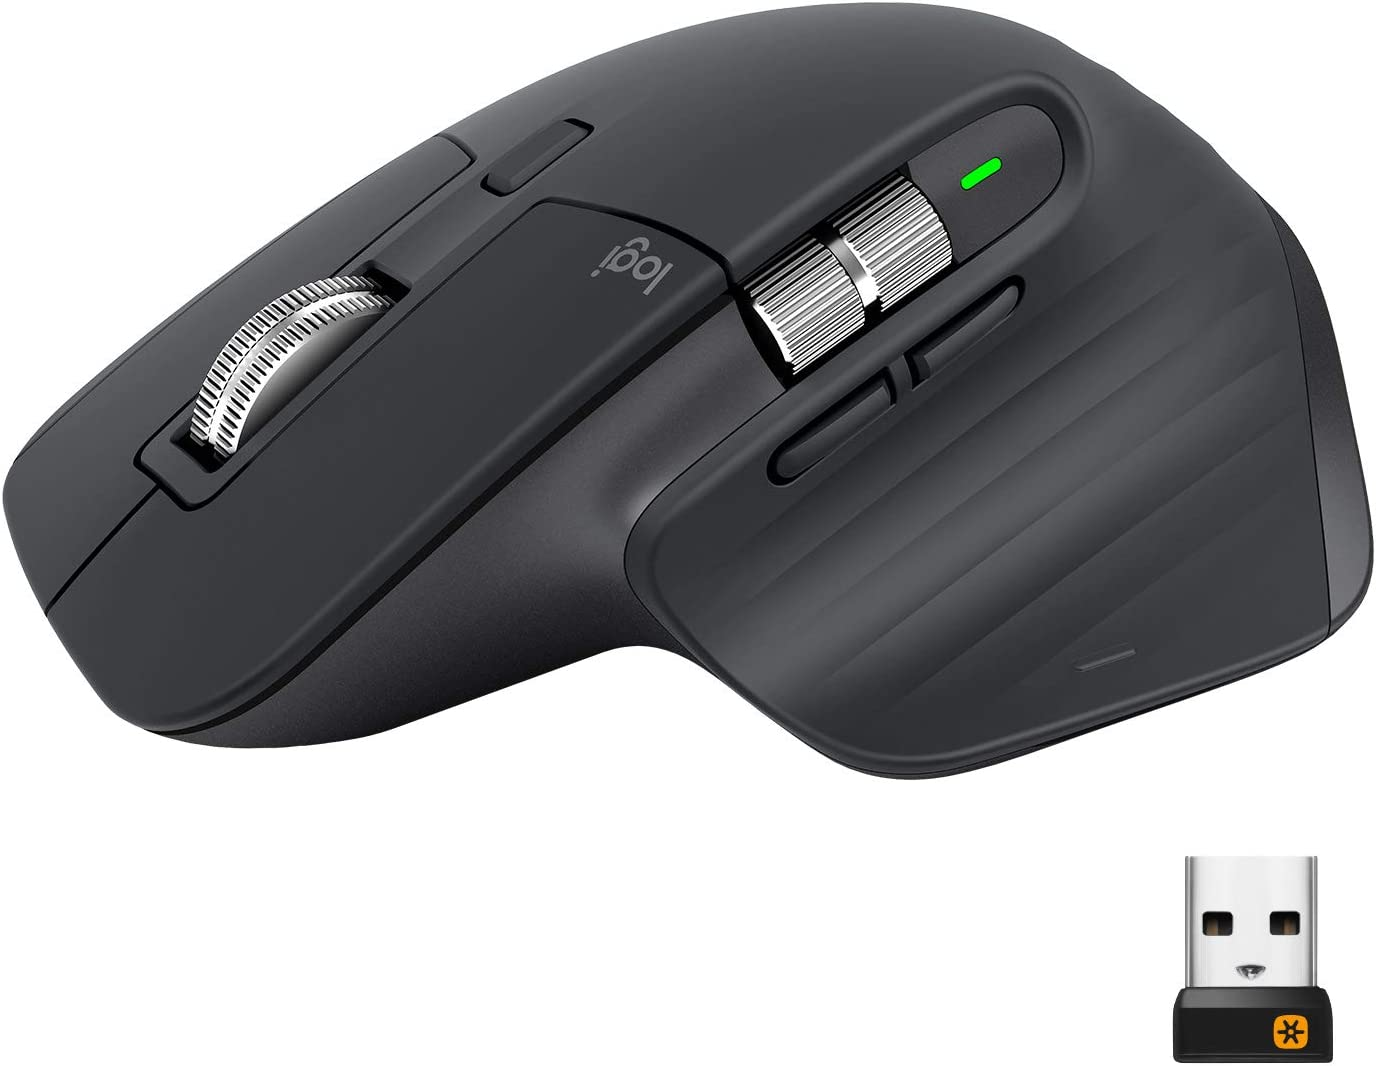 Our Best Business Mouse 2021 - the Logitech MX Master 3